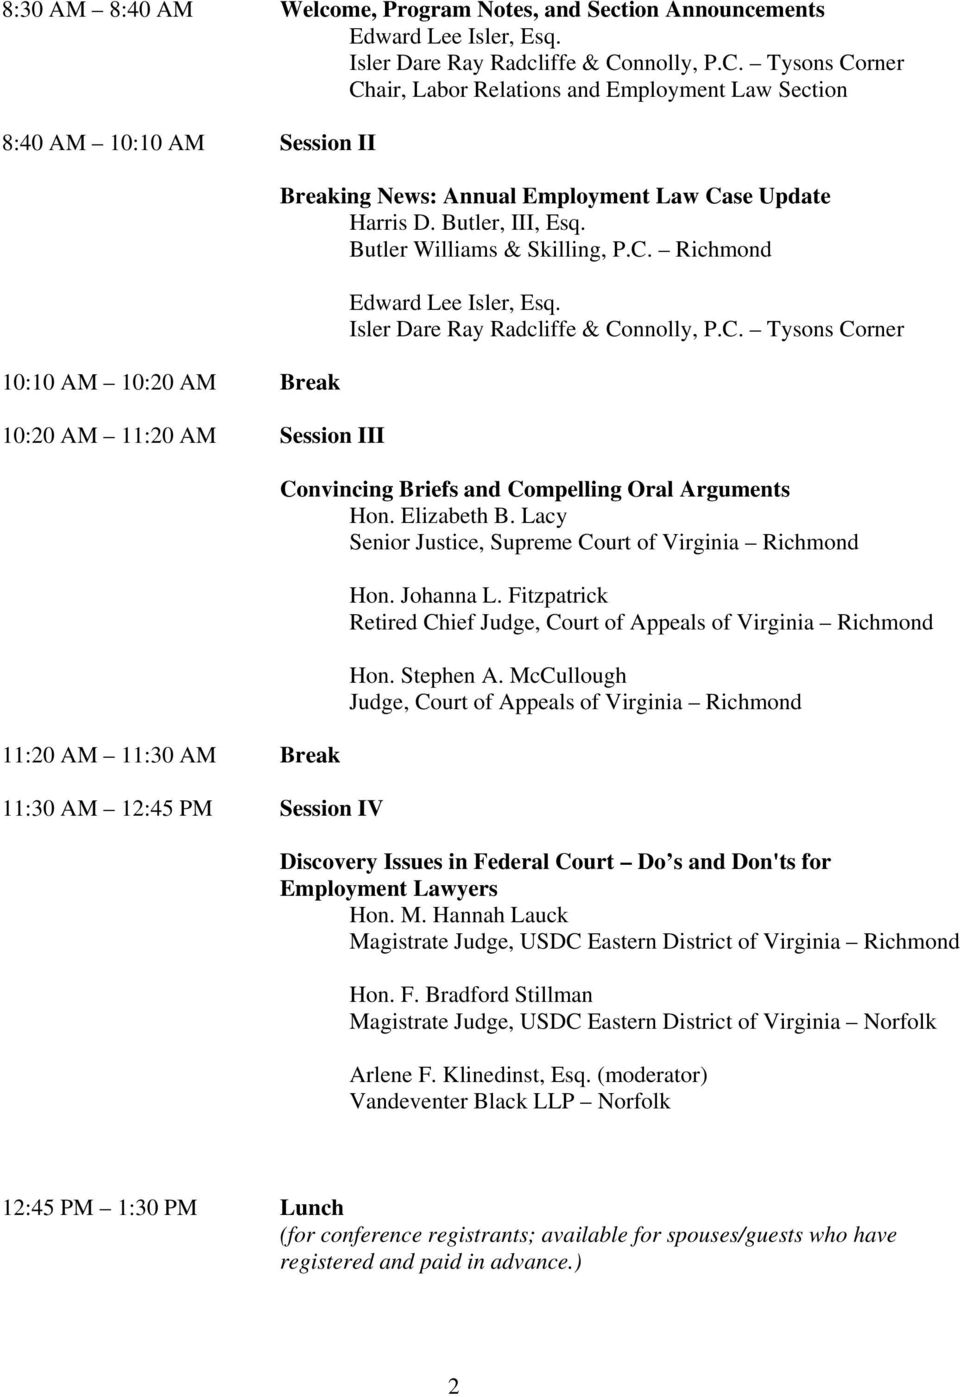 Tysons Corner Chair, Labor Relations and Employment Law Section 8:40 AM 10:10 AM Session II 10:10 AM 10:20 AM Break 10:20 AM 11:20 AM Session III 11:20 AM 11:30 AM Break 11:30 AM 12:45 PM Session IV